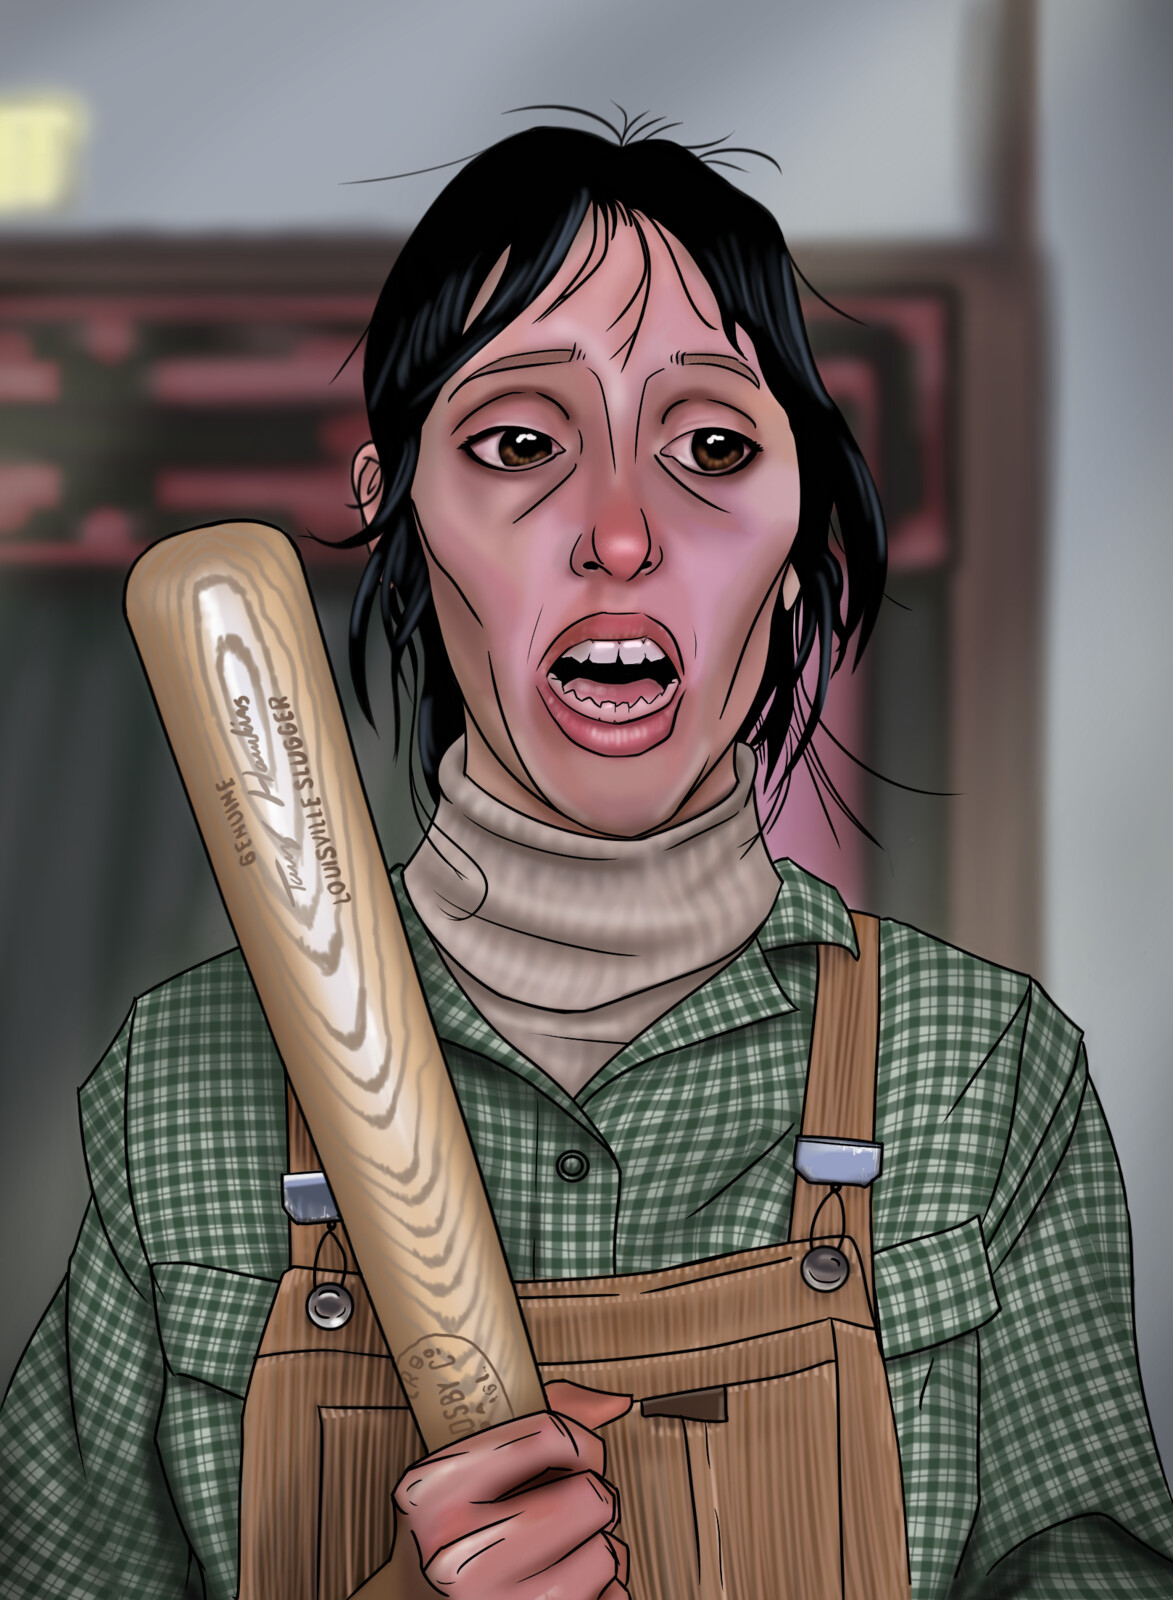 A caricature of Mrs Torrence from 'The Shining'. Digital.